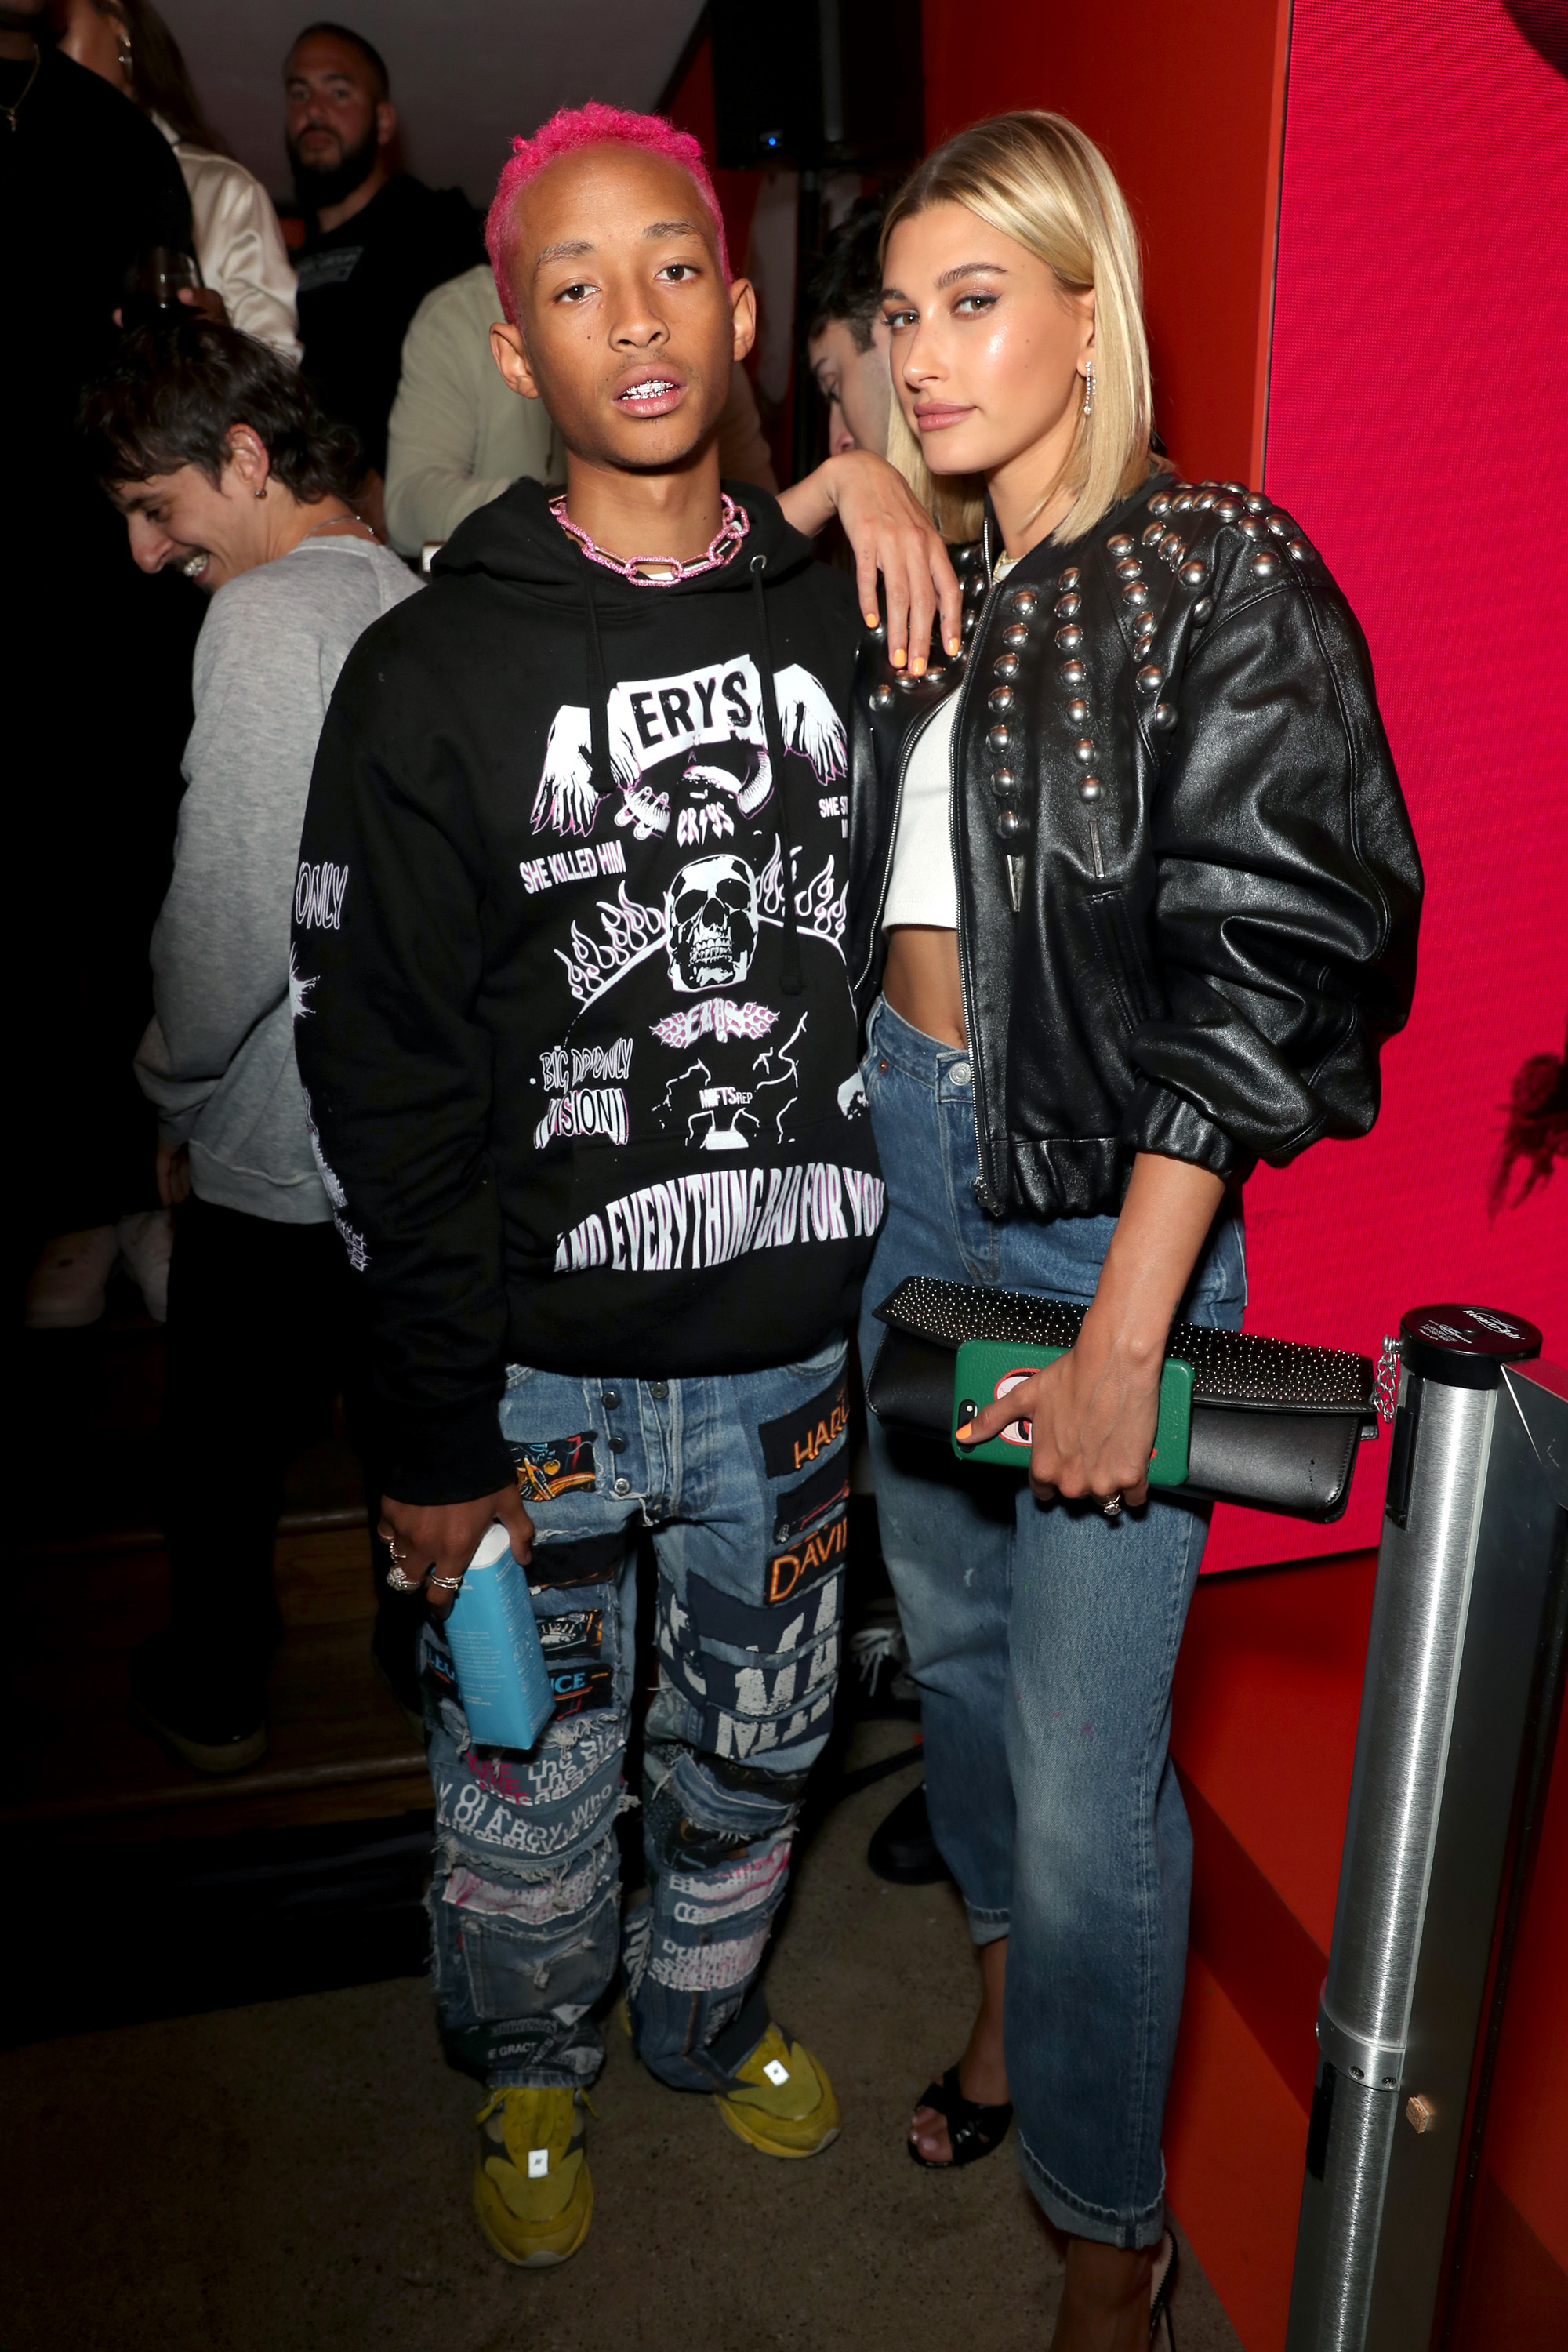 Jaden Smith and Hailey Baldwin Bieber strike a pose at Levi's 501 Day Hosted by Hailey Bieber and Heron Preston at the Levi's Haus in Los Angeles on May 18, 2019.